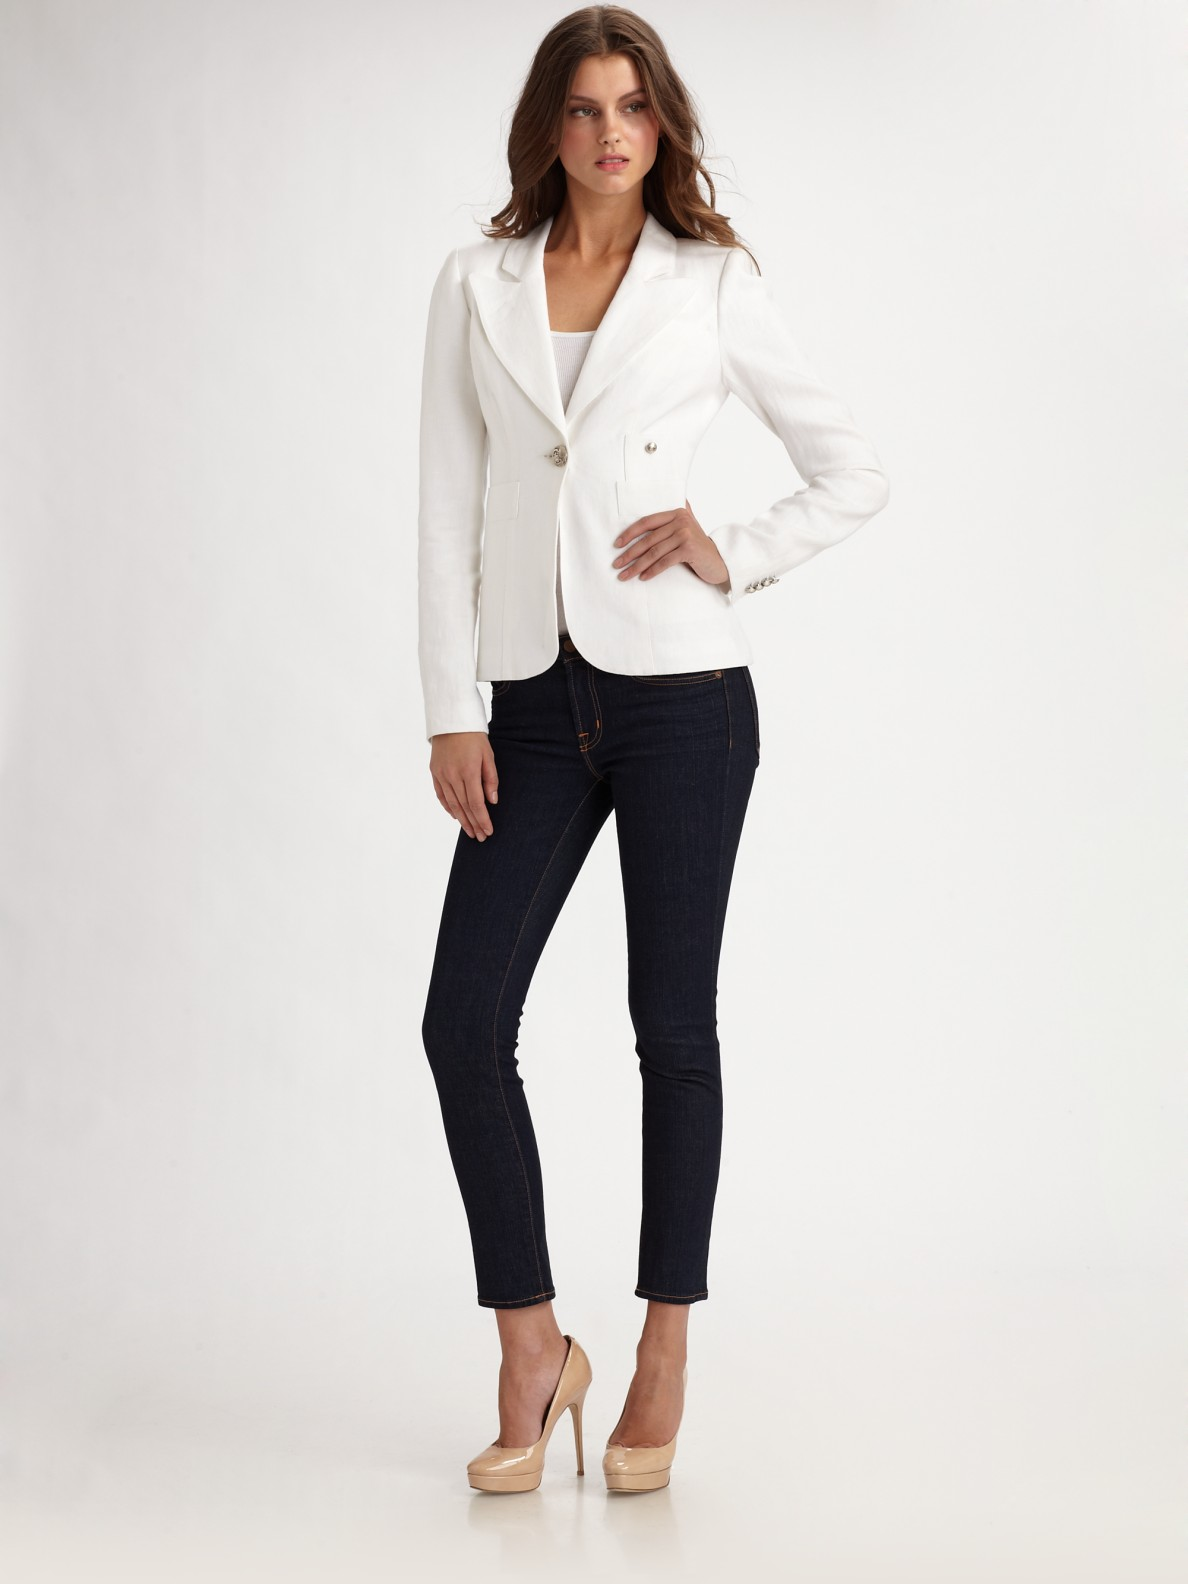 Smythe One Button Fitted Blazer In White Lyst